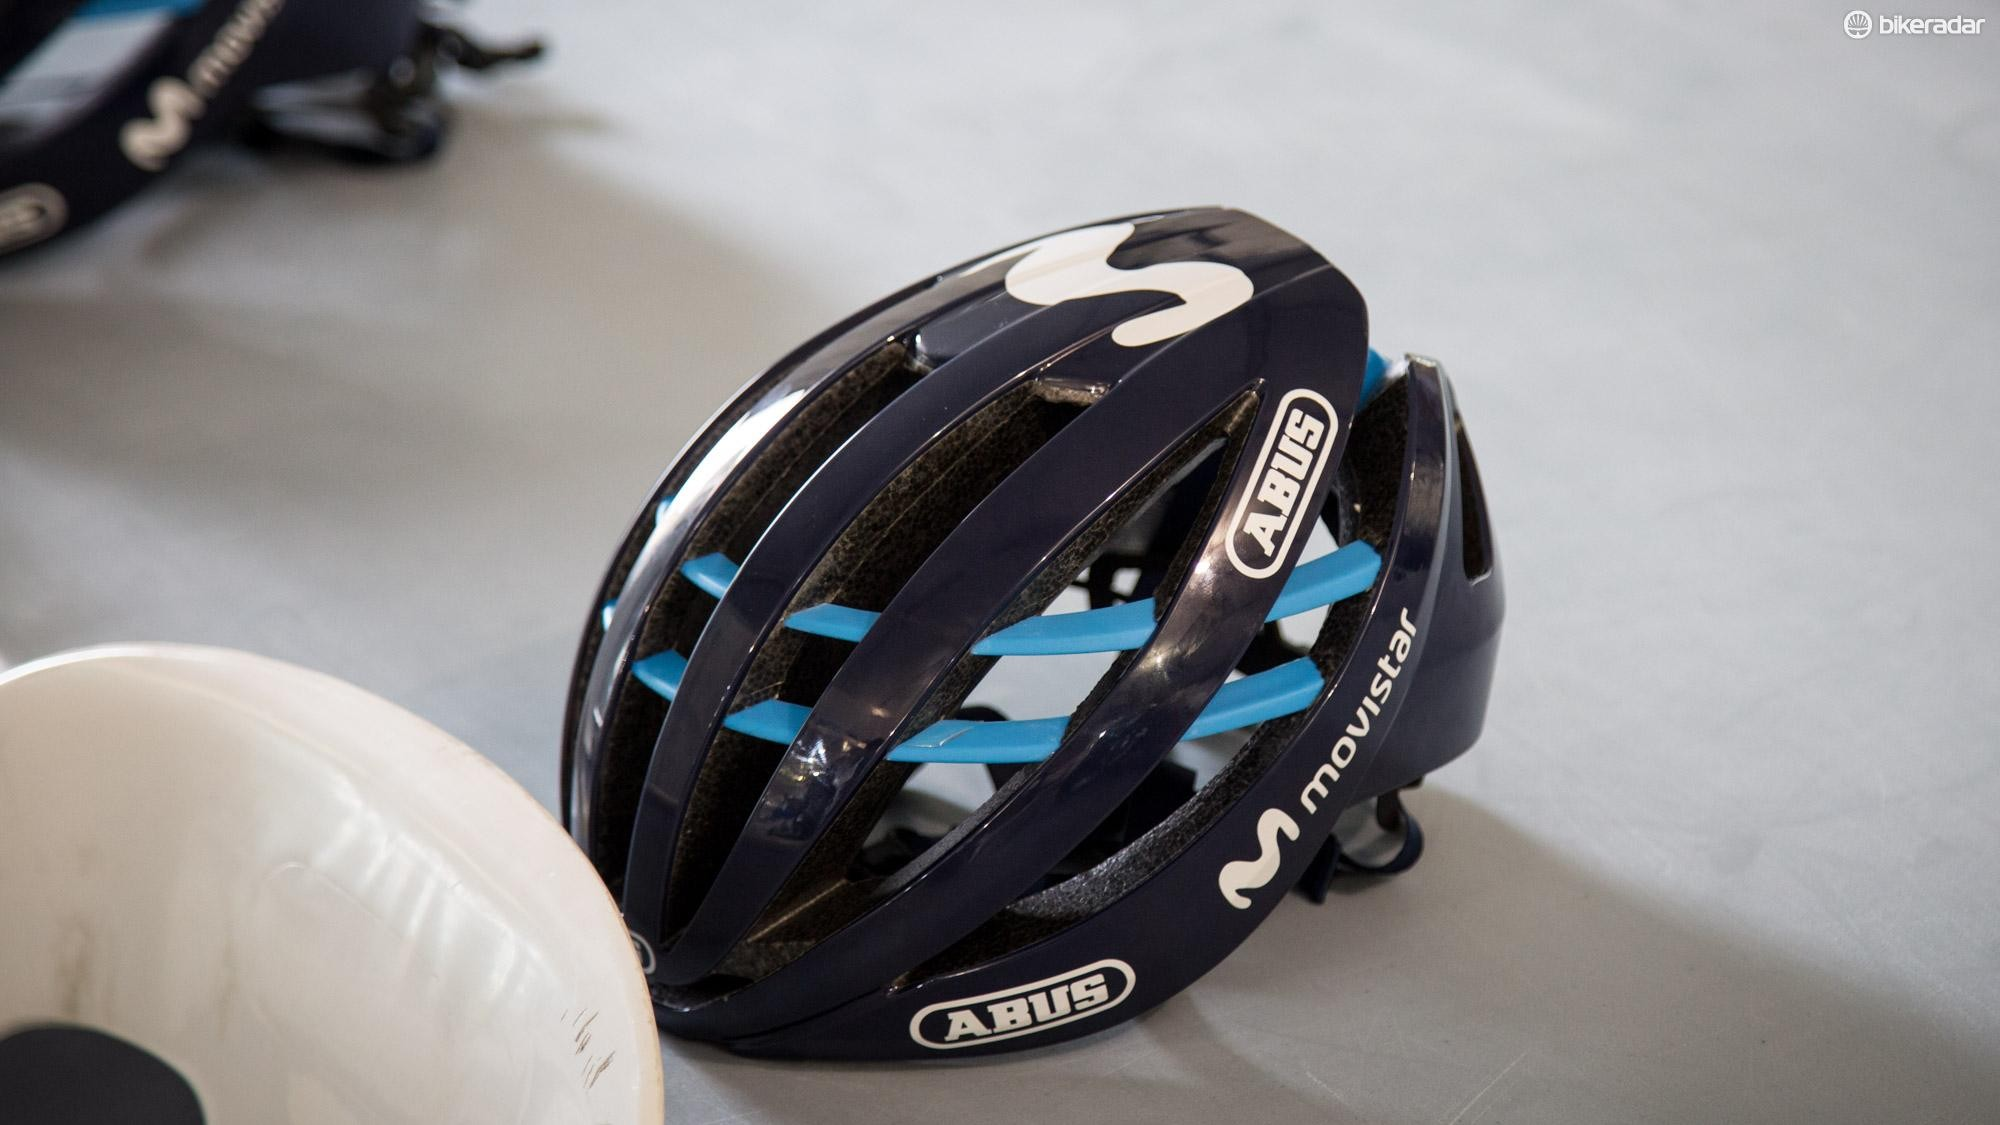 Movistar had the new (as of October 2017) Aventor lids laid out for Wednesday's training ride